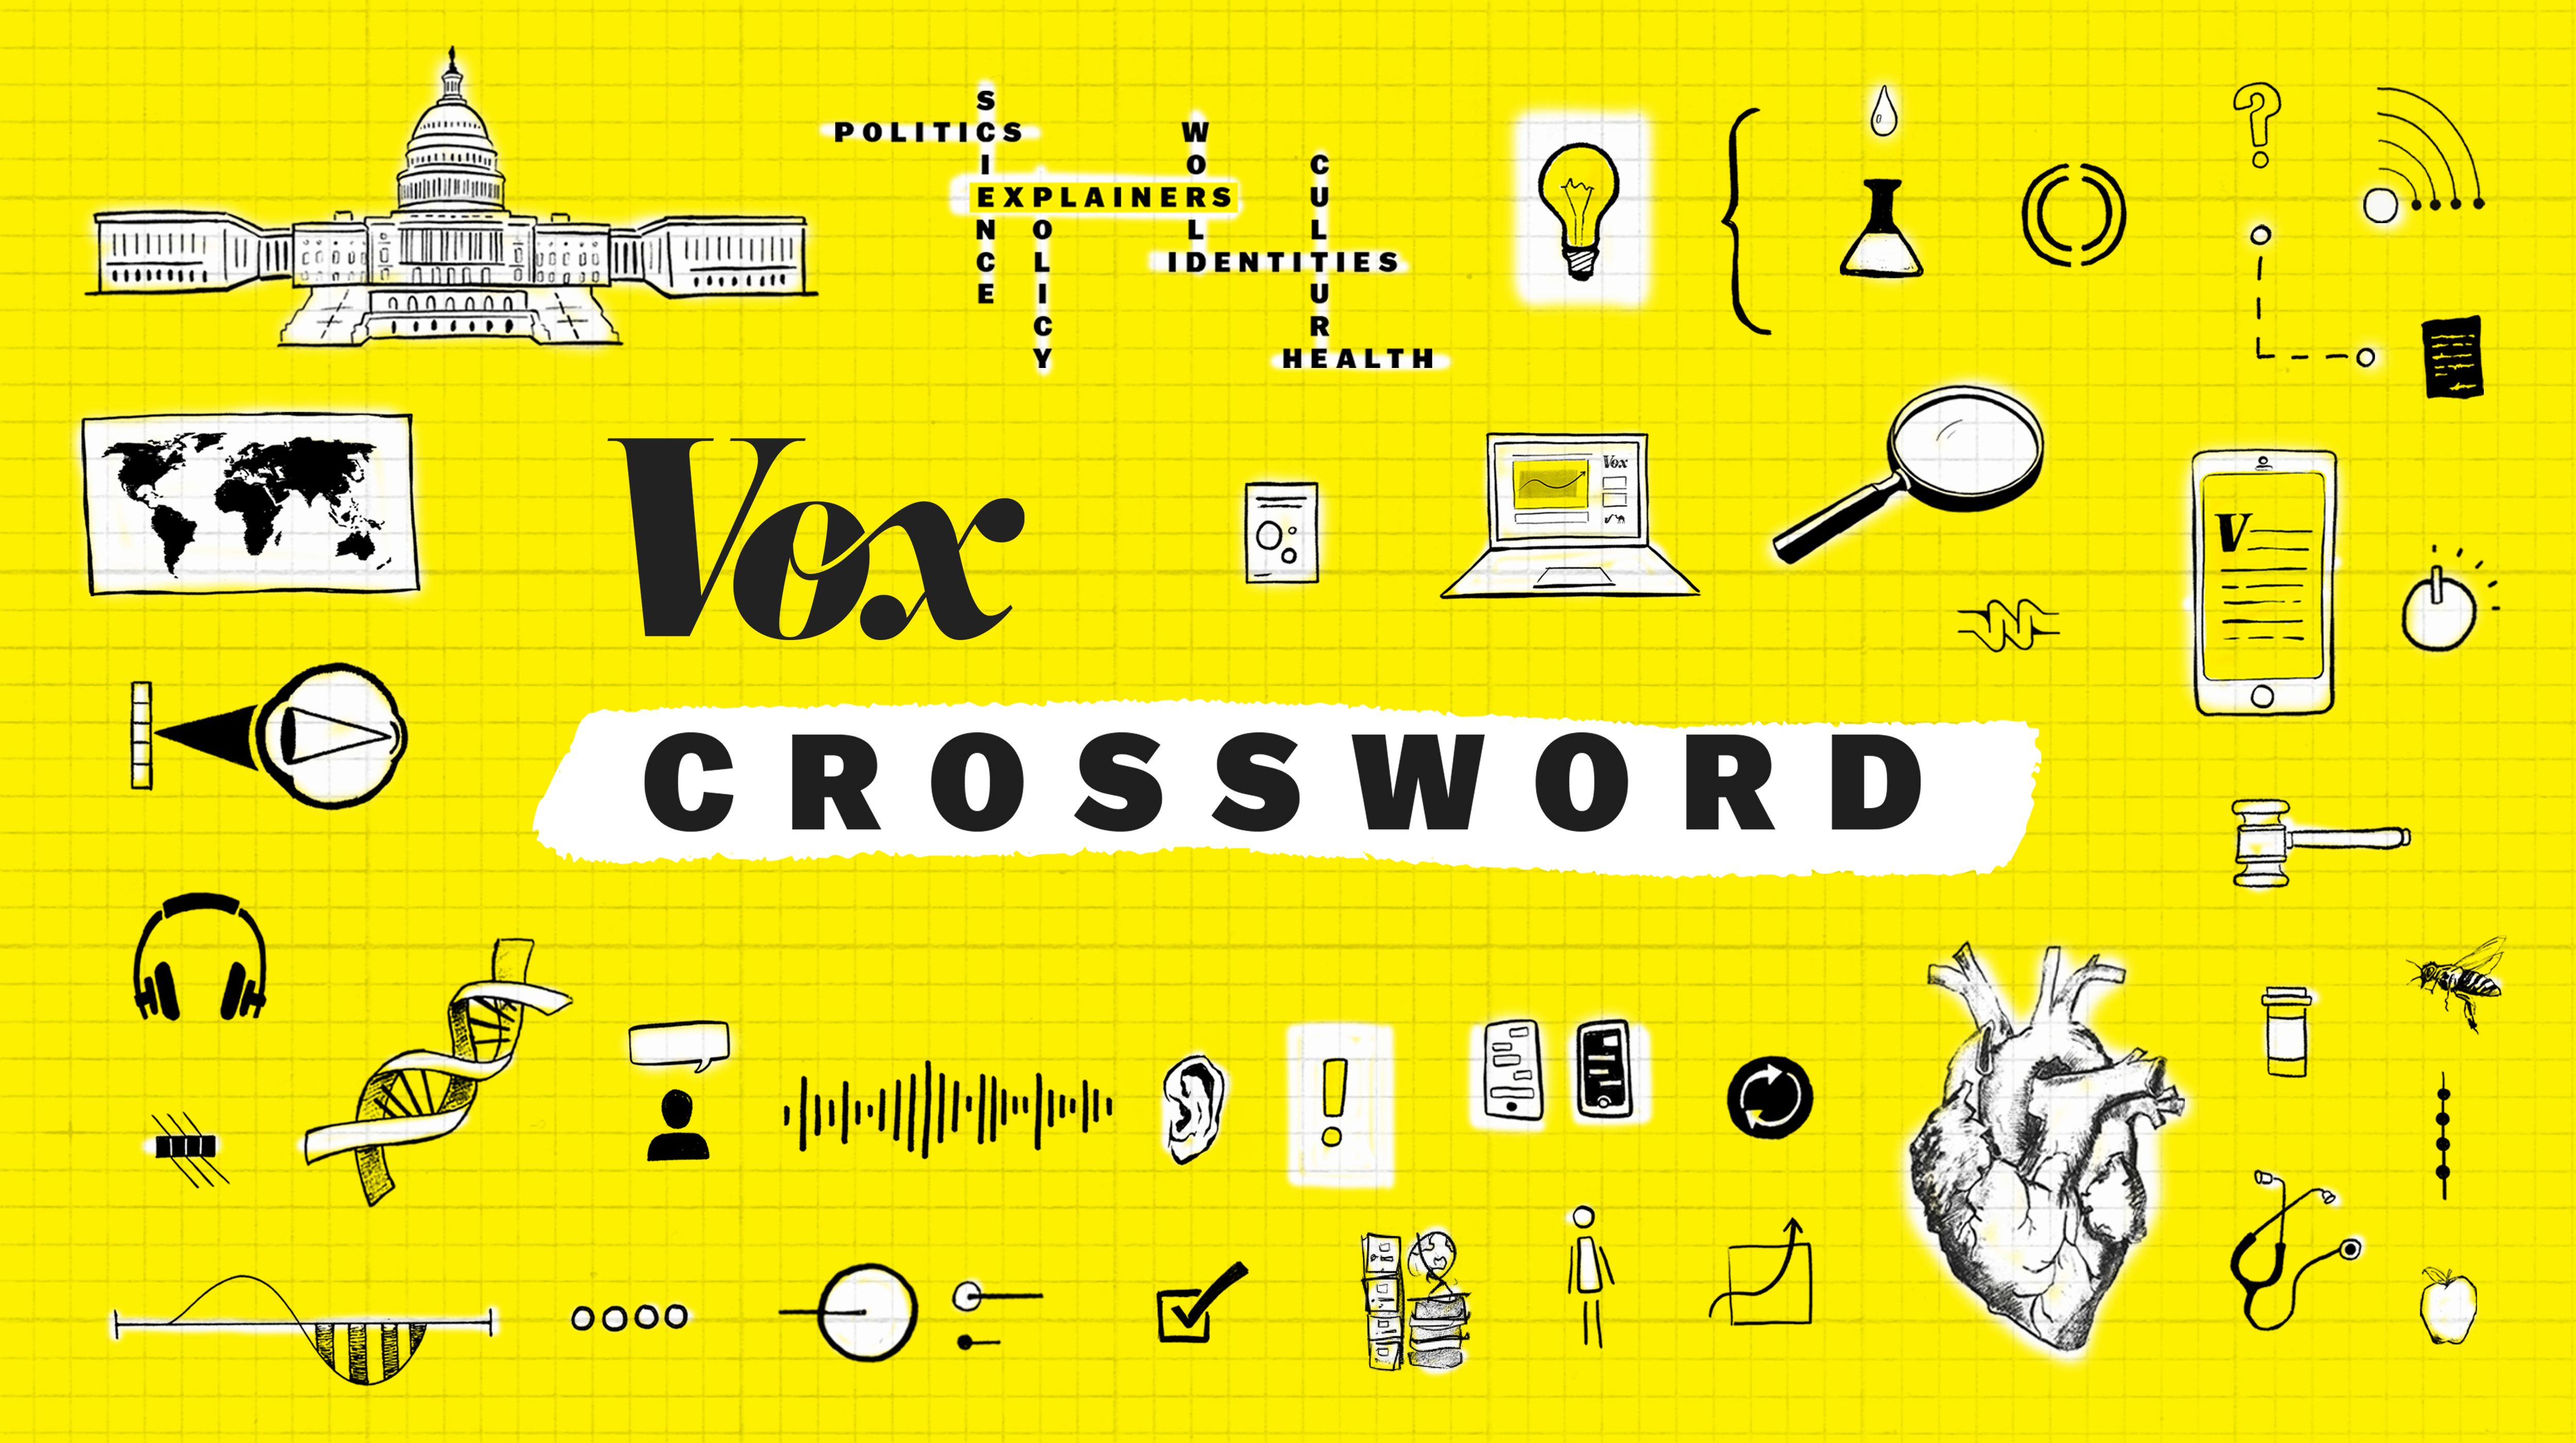 New Vox Crossword puzzles come out Monday through Saturday